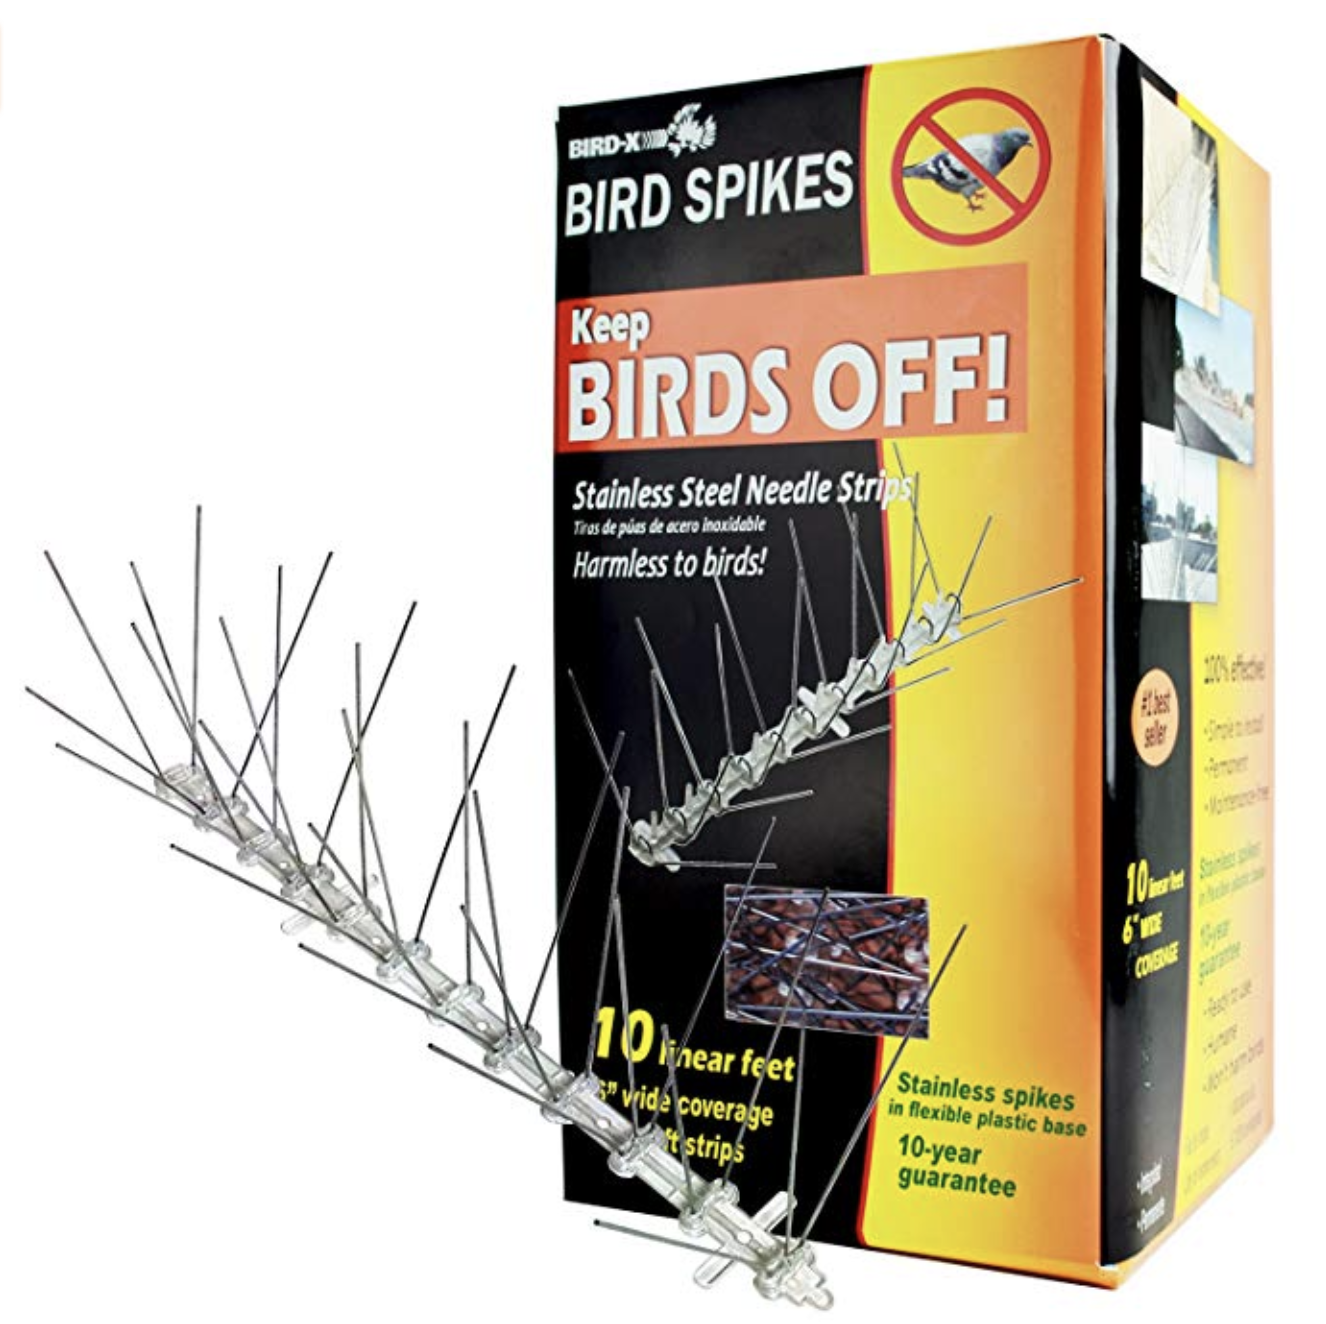 Purchased one of these Bird-X Stainless Steel Bird Spikes Kit covers 10 Feet from  Amazon